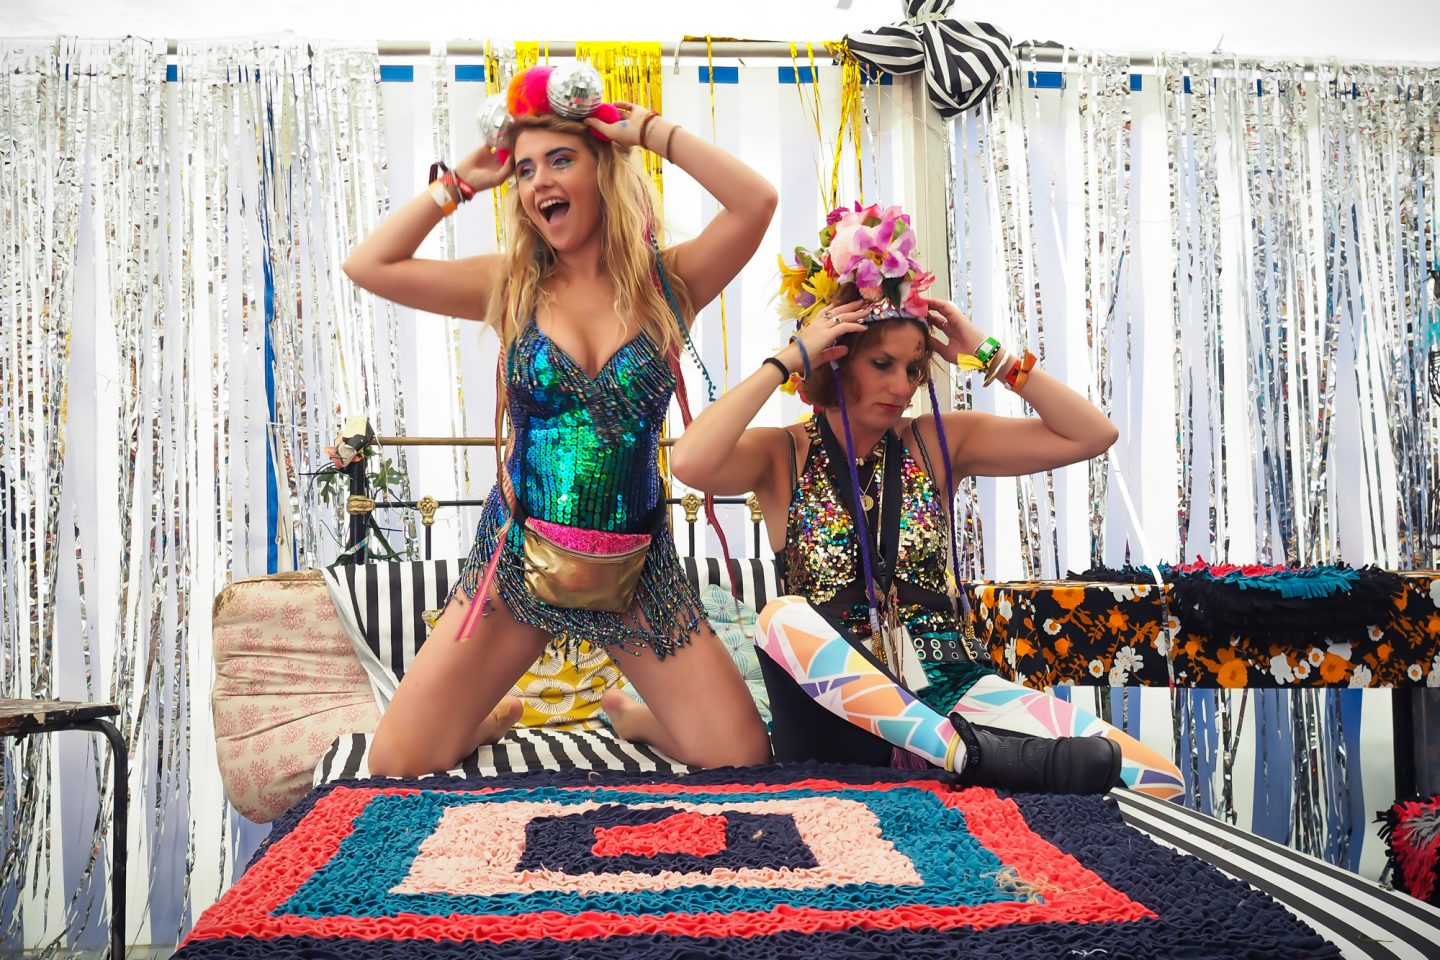 Love Saves the Day Bristol, Lady Jane Bristol mermaid sequin playsuit, Dulcie's Feathers pom-pom disco ball headpiece, Fuud couture, festival style